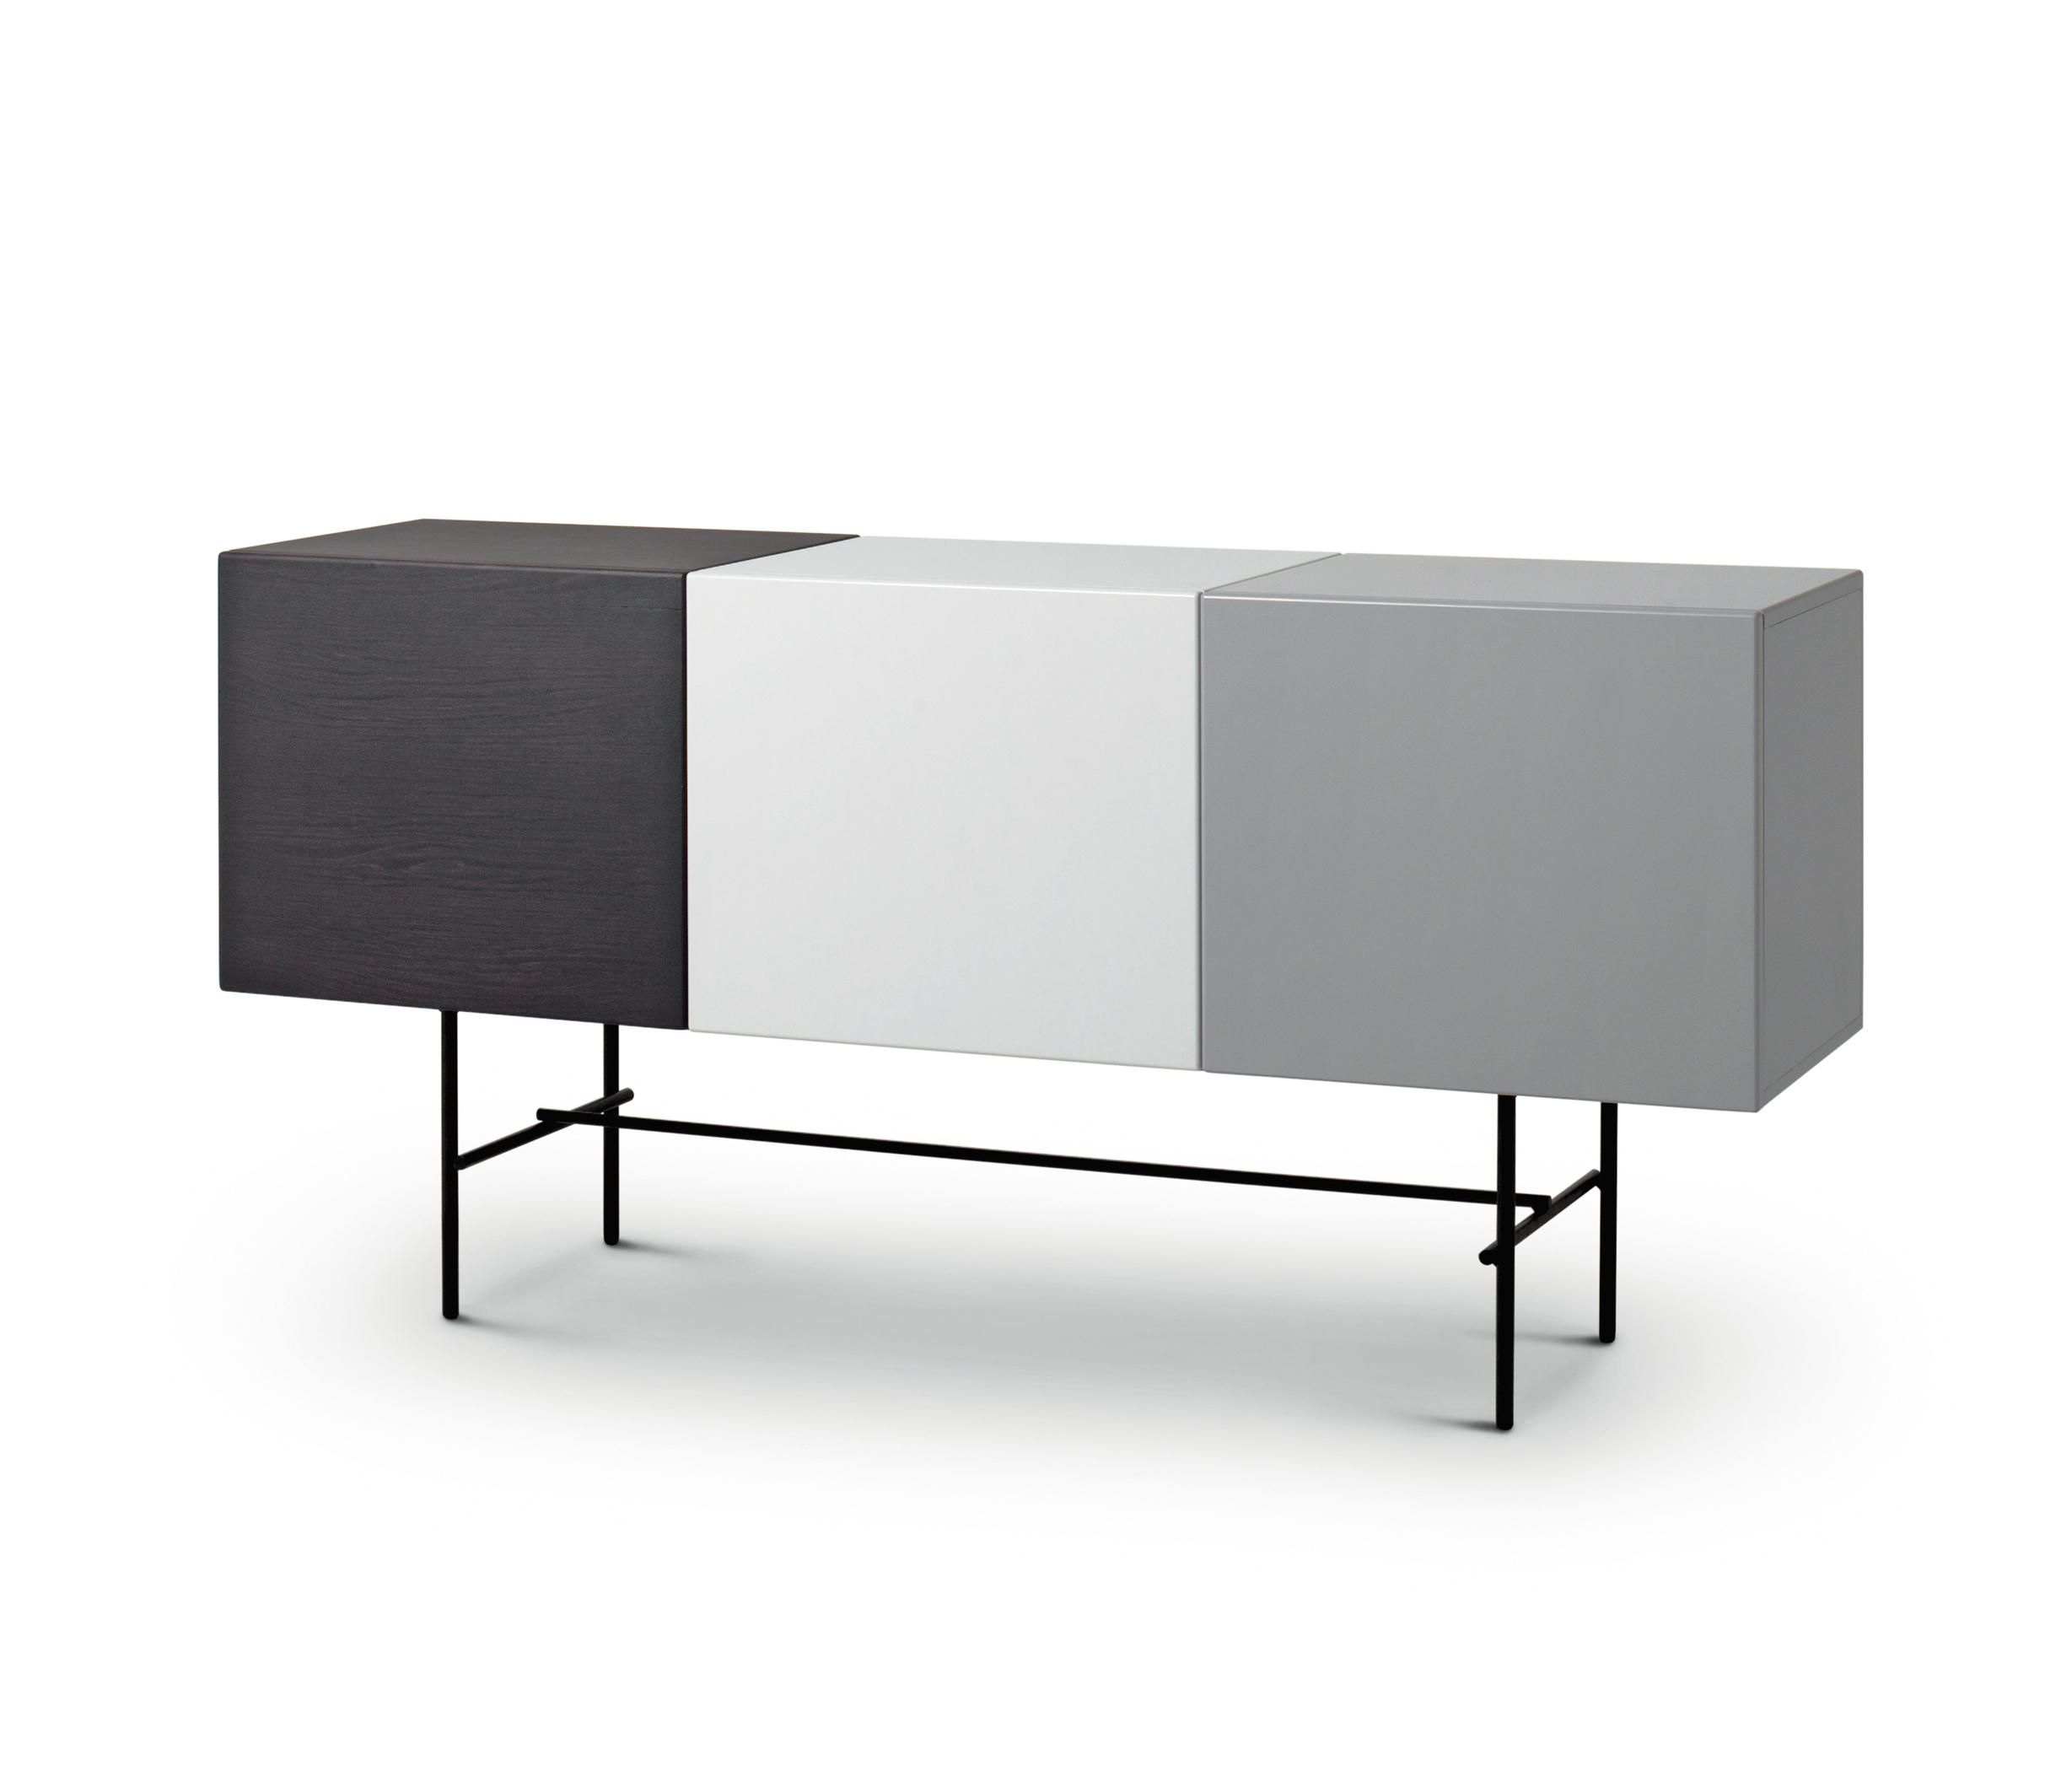 Rubycon Sideboard Designer Sideboards From Arflex All Information High Resolution Images Cads Catalogues Contact Information With Images Sideboard Designs